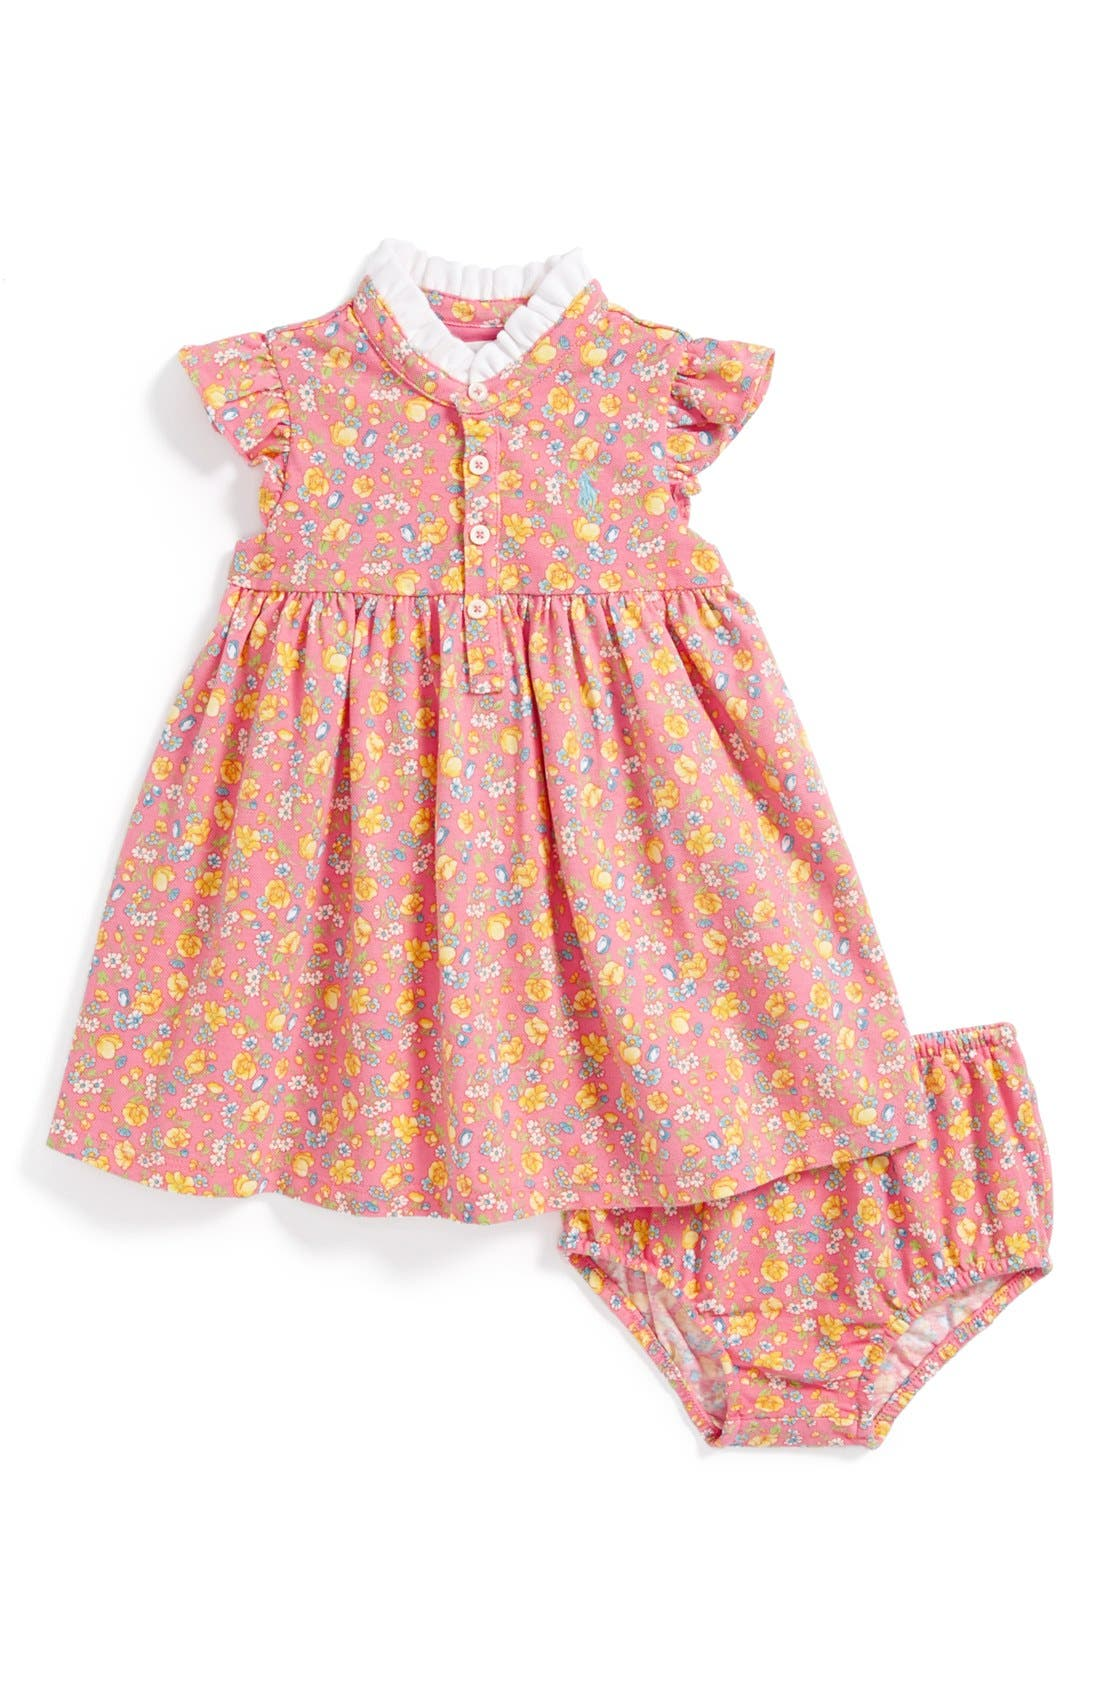 Main Image - Ralph Lauren Floral Print Dress & Bloomers (Baby Girls)